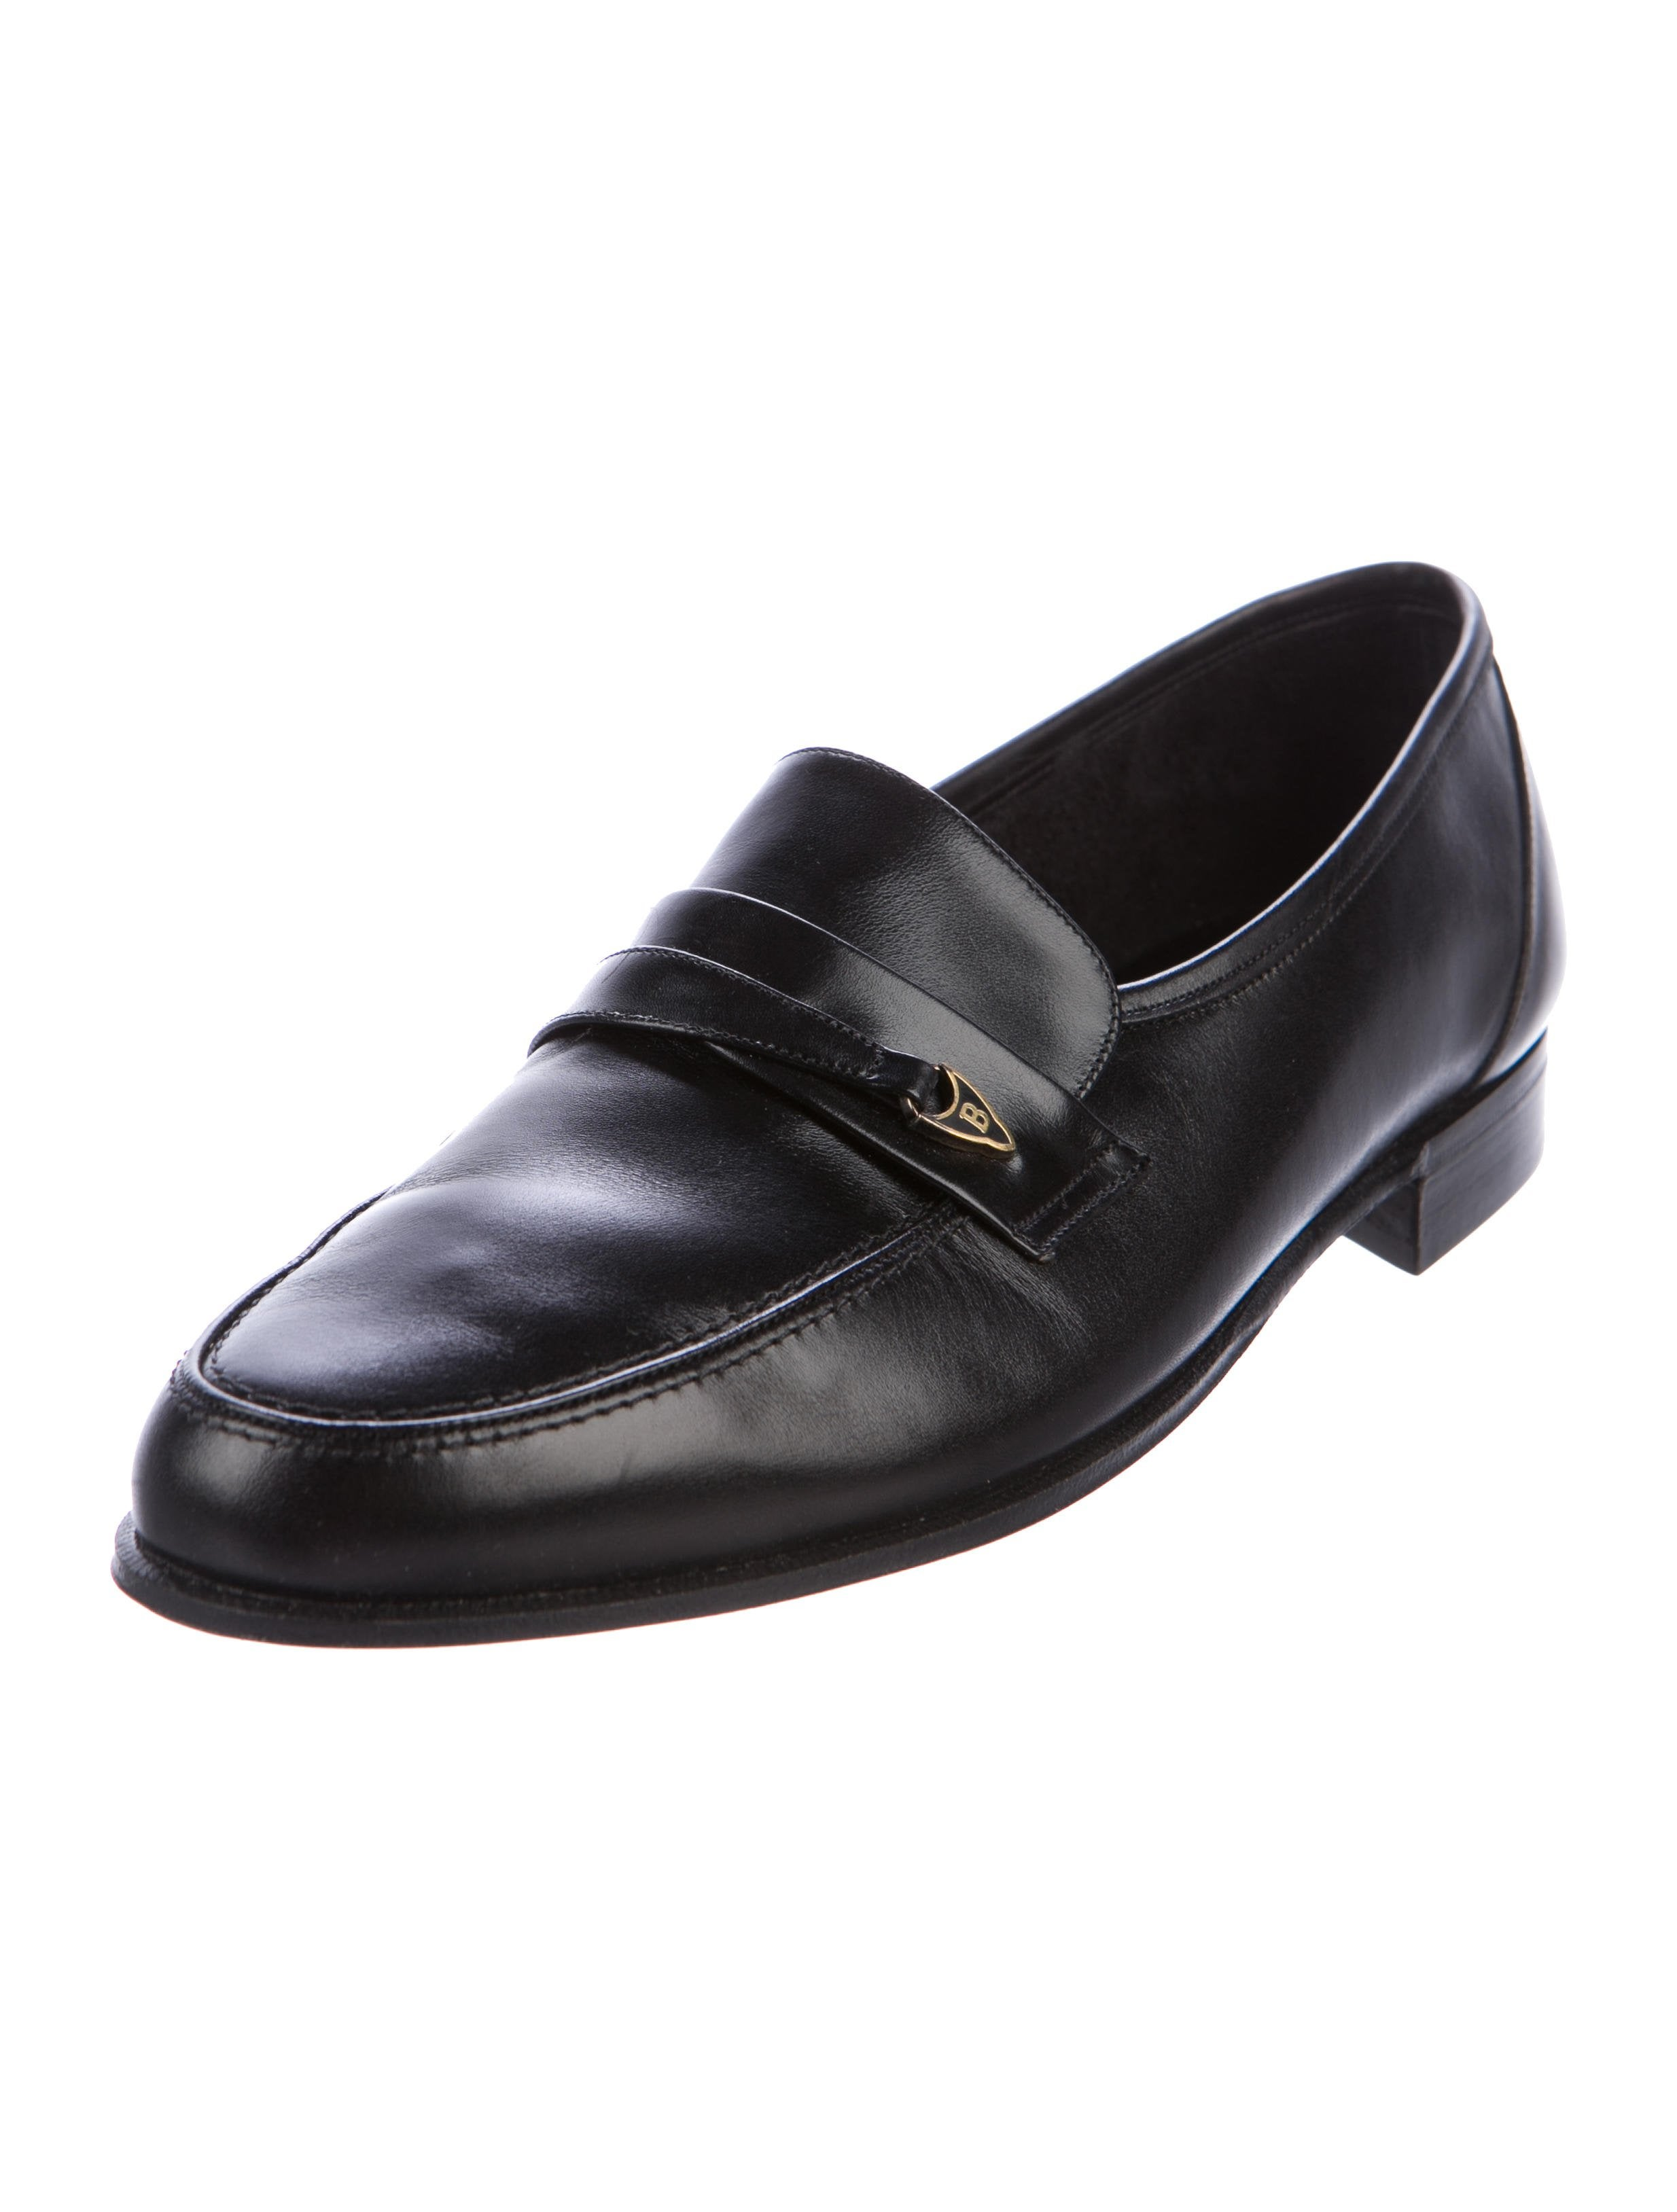 Bally Leather Round-Toe Loafers latest cheap online ZmZtp0zMO